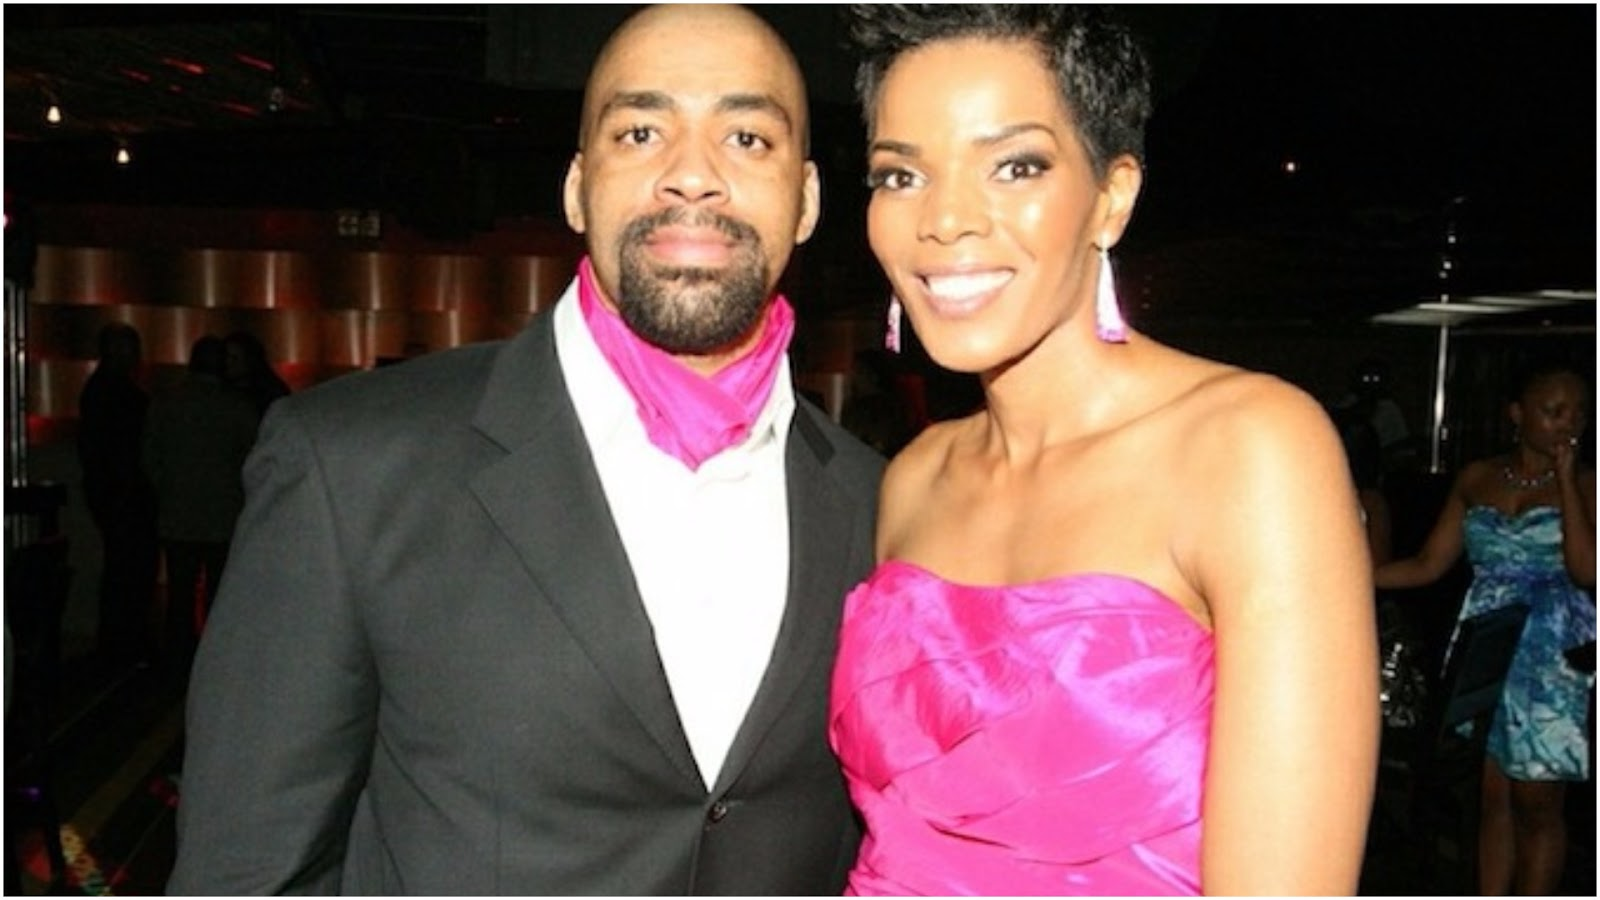 Connie Ferguson-my husband cheats because I'm older than him.